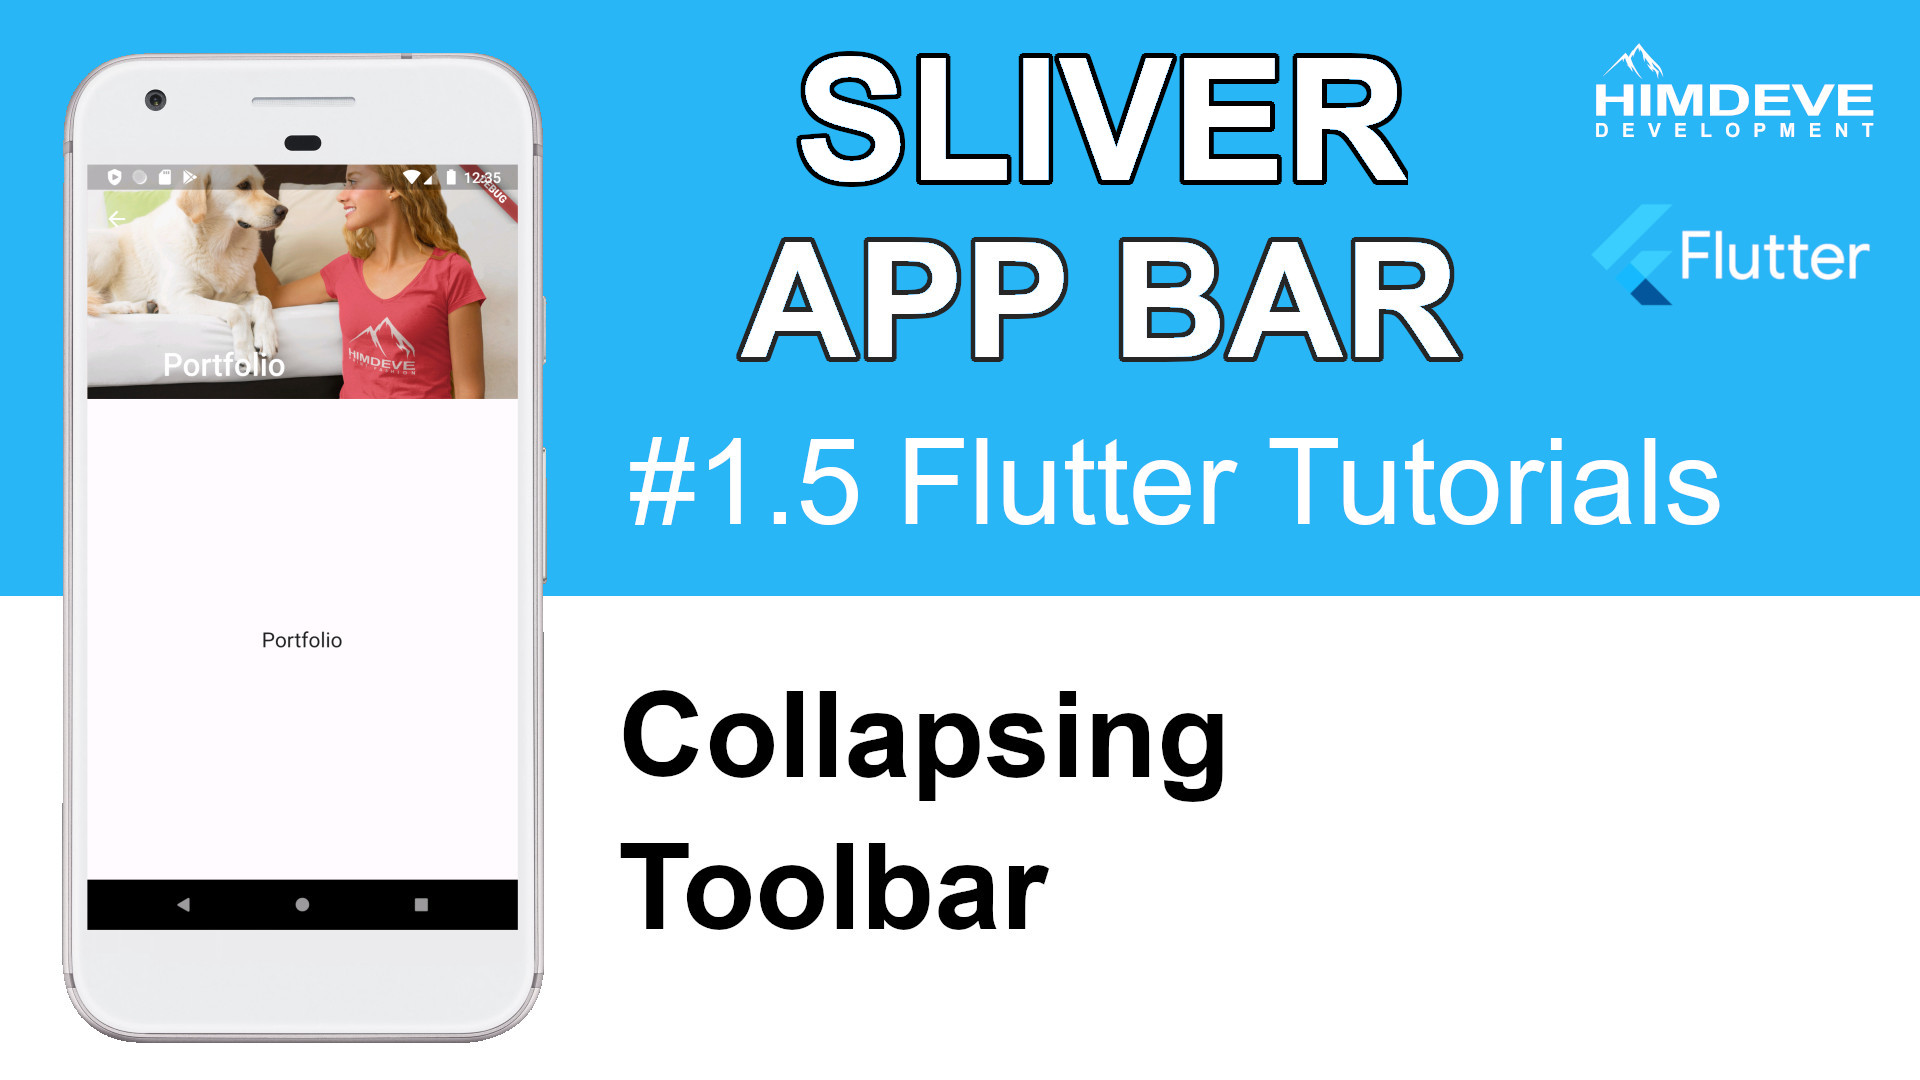 #1_5 Sliver App Bar Flutter Tutorial